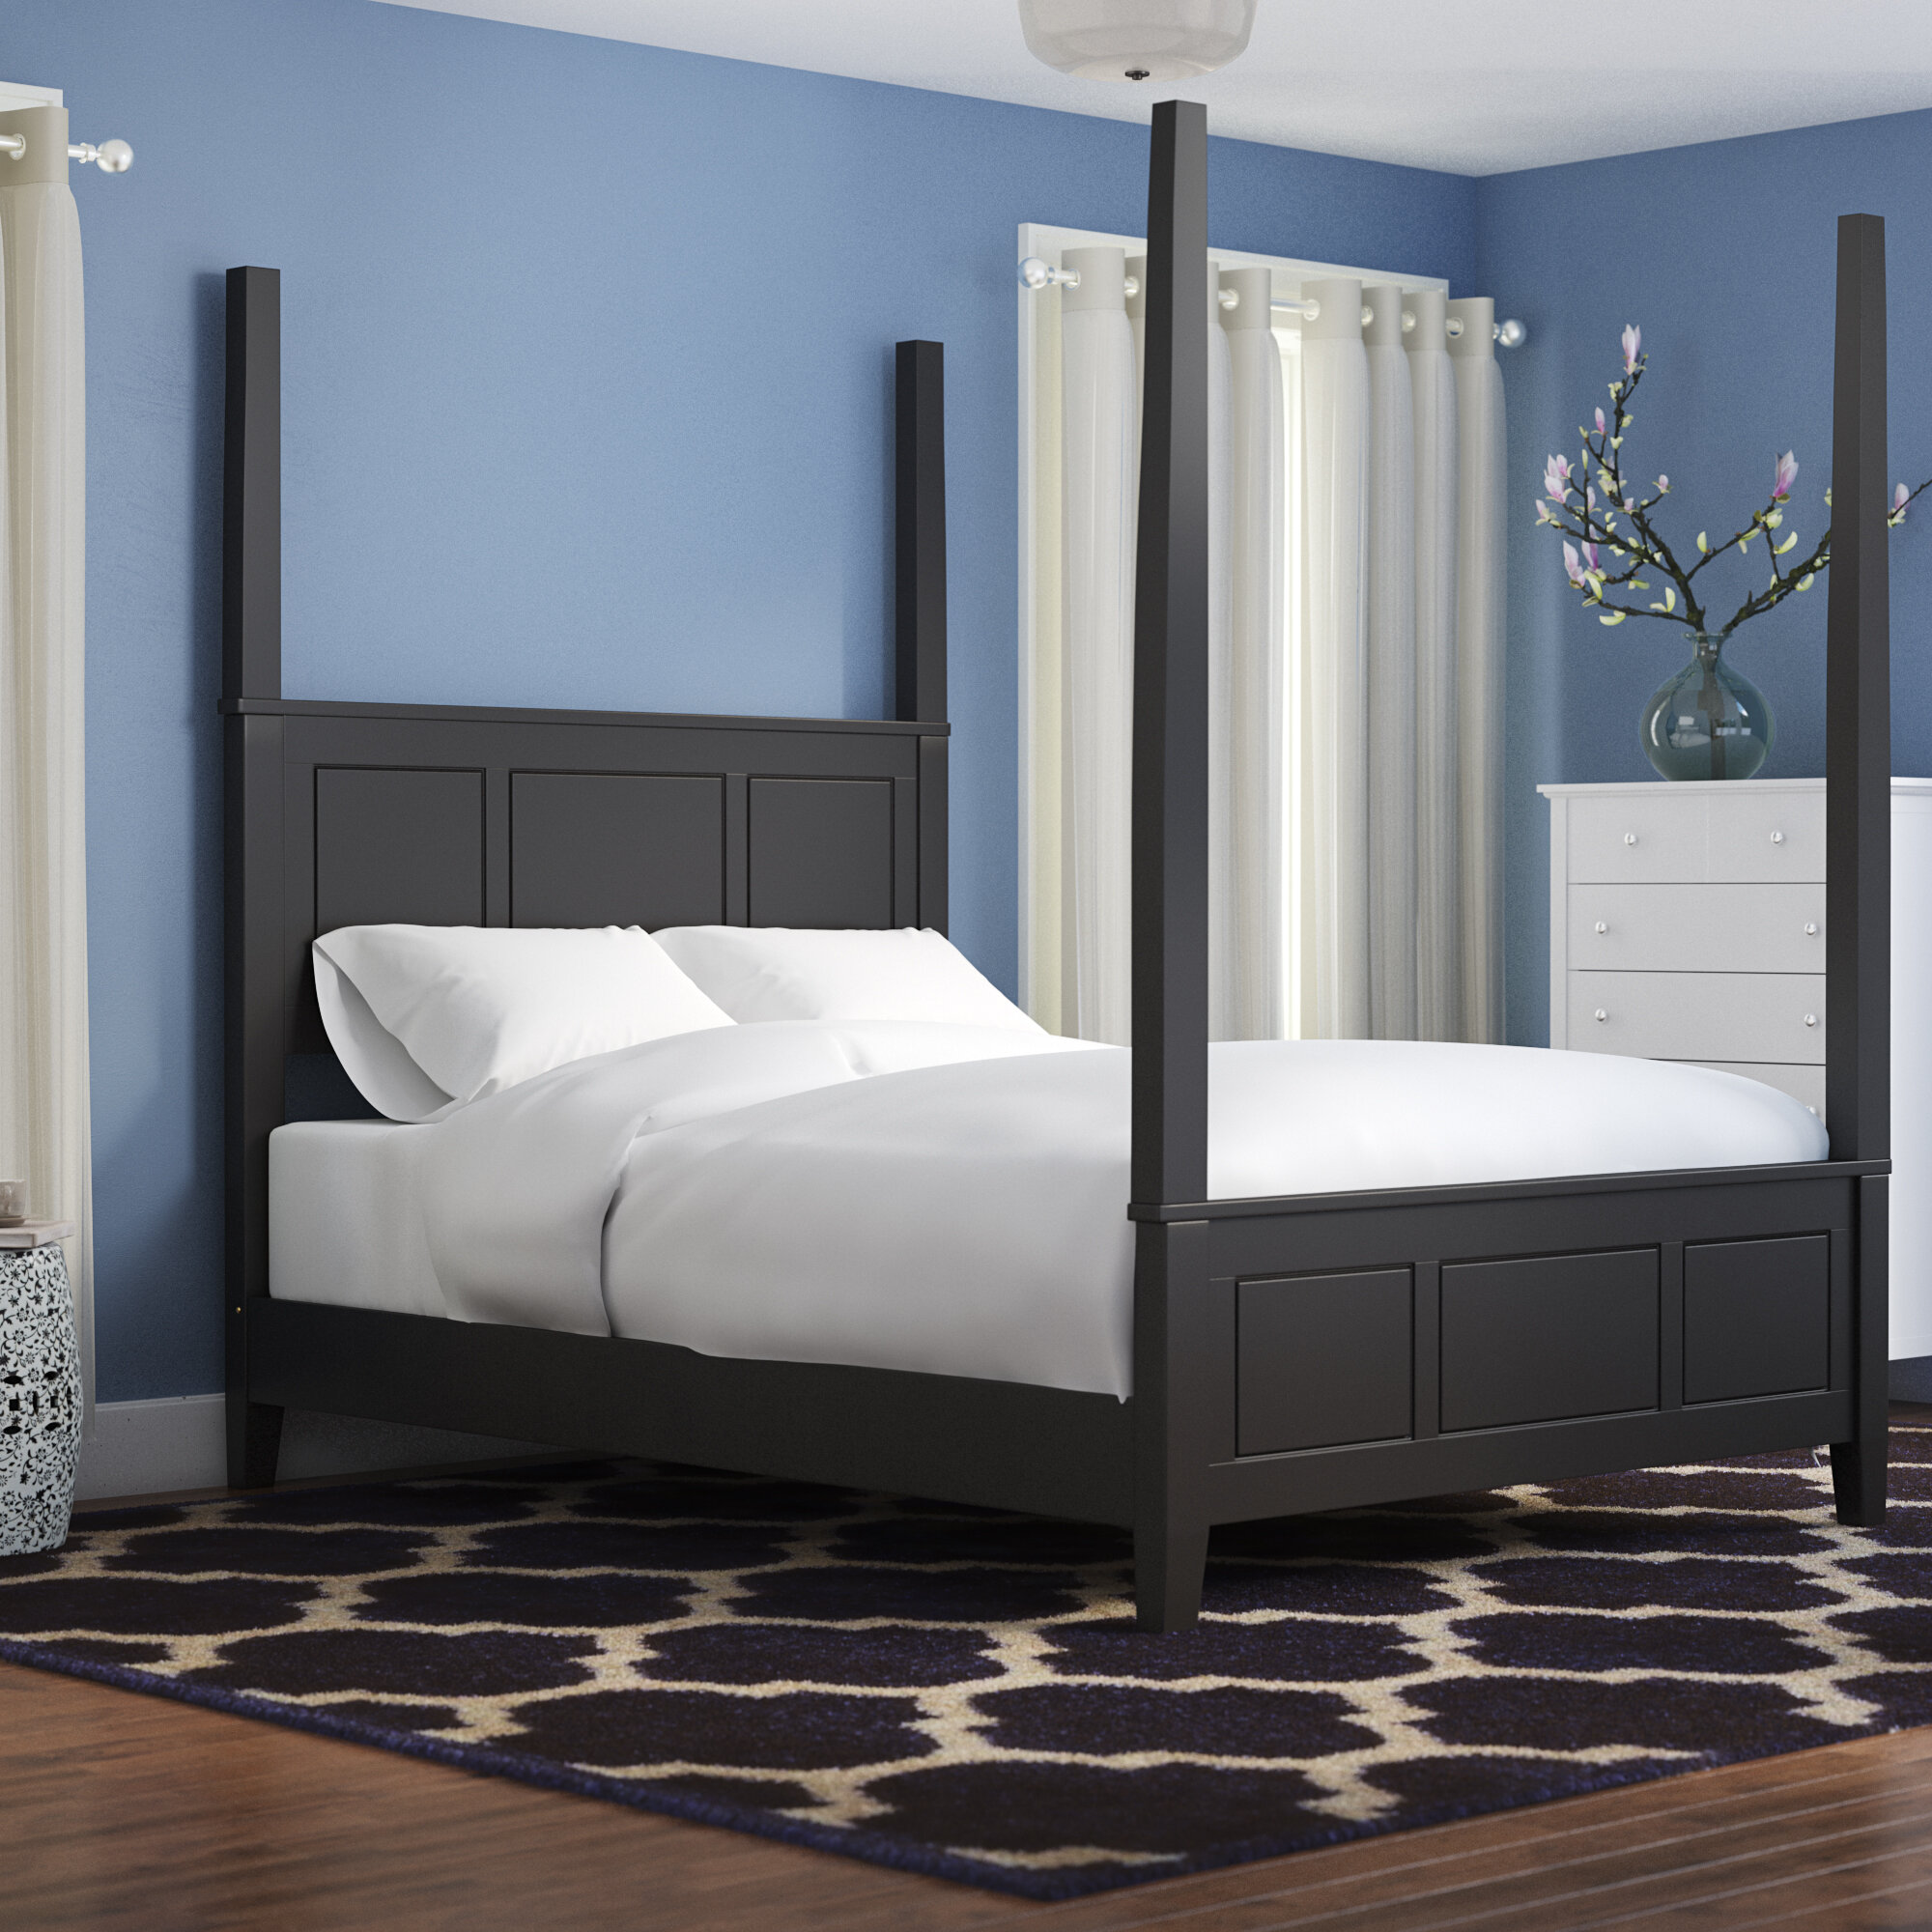 Alcott Hill Mckeel Four Poster Bed Reviews Wayfair